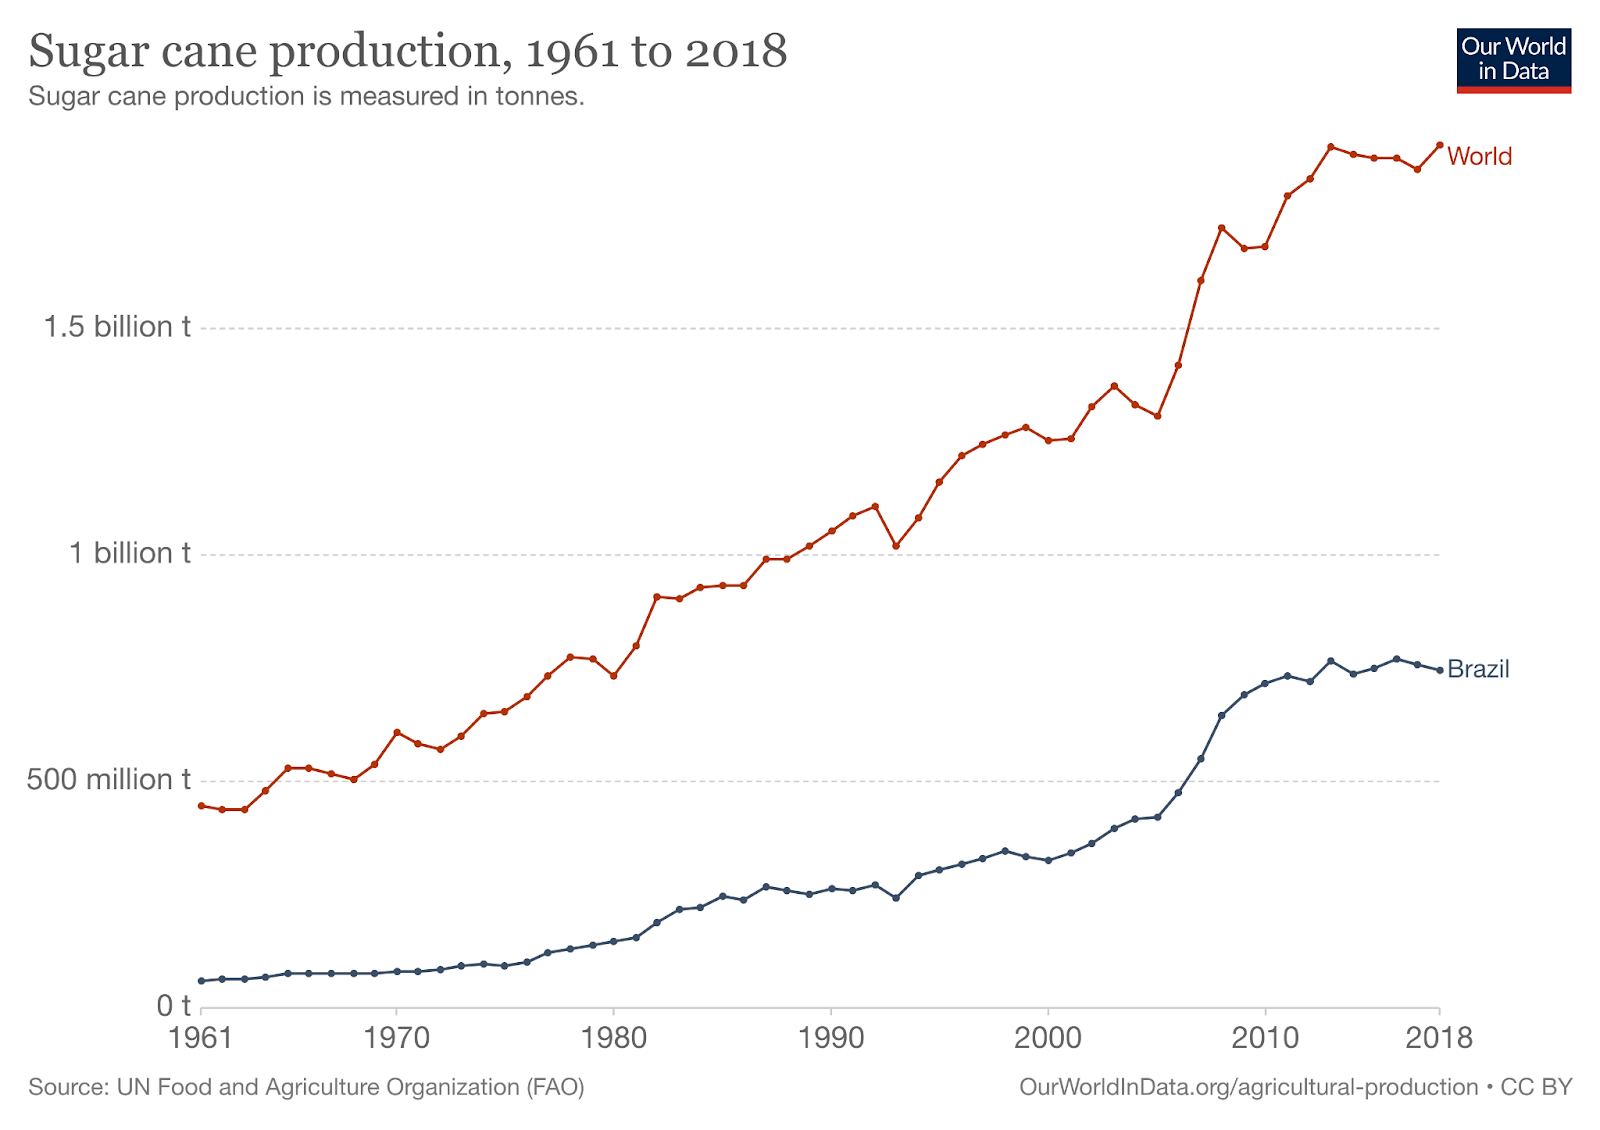 graph of sugar cane production from 1961 to 2018 in billion tonnes